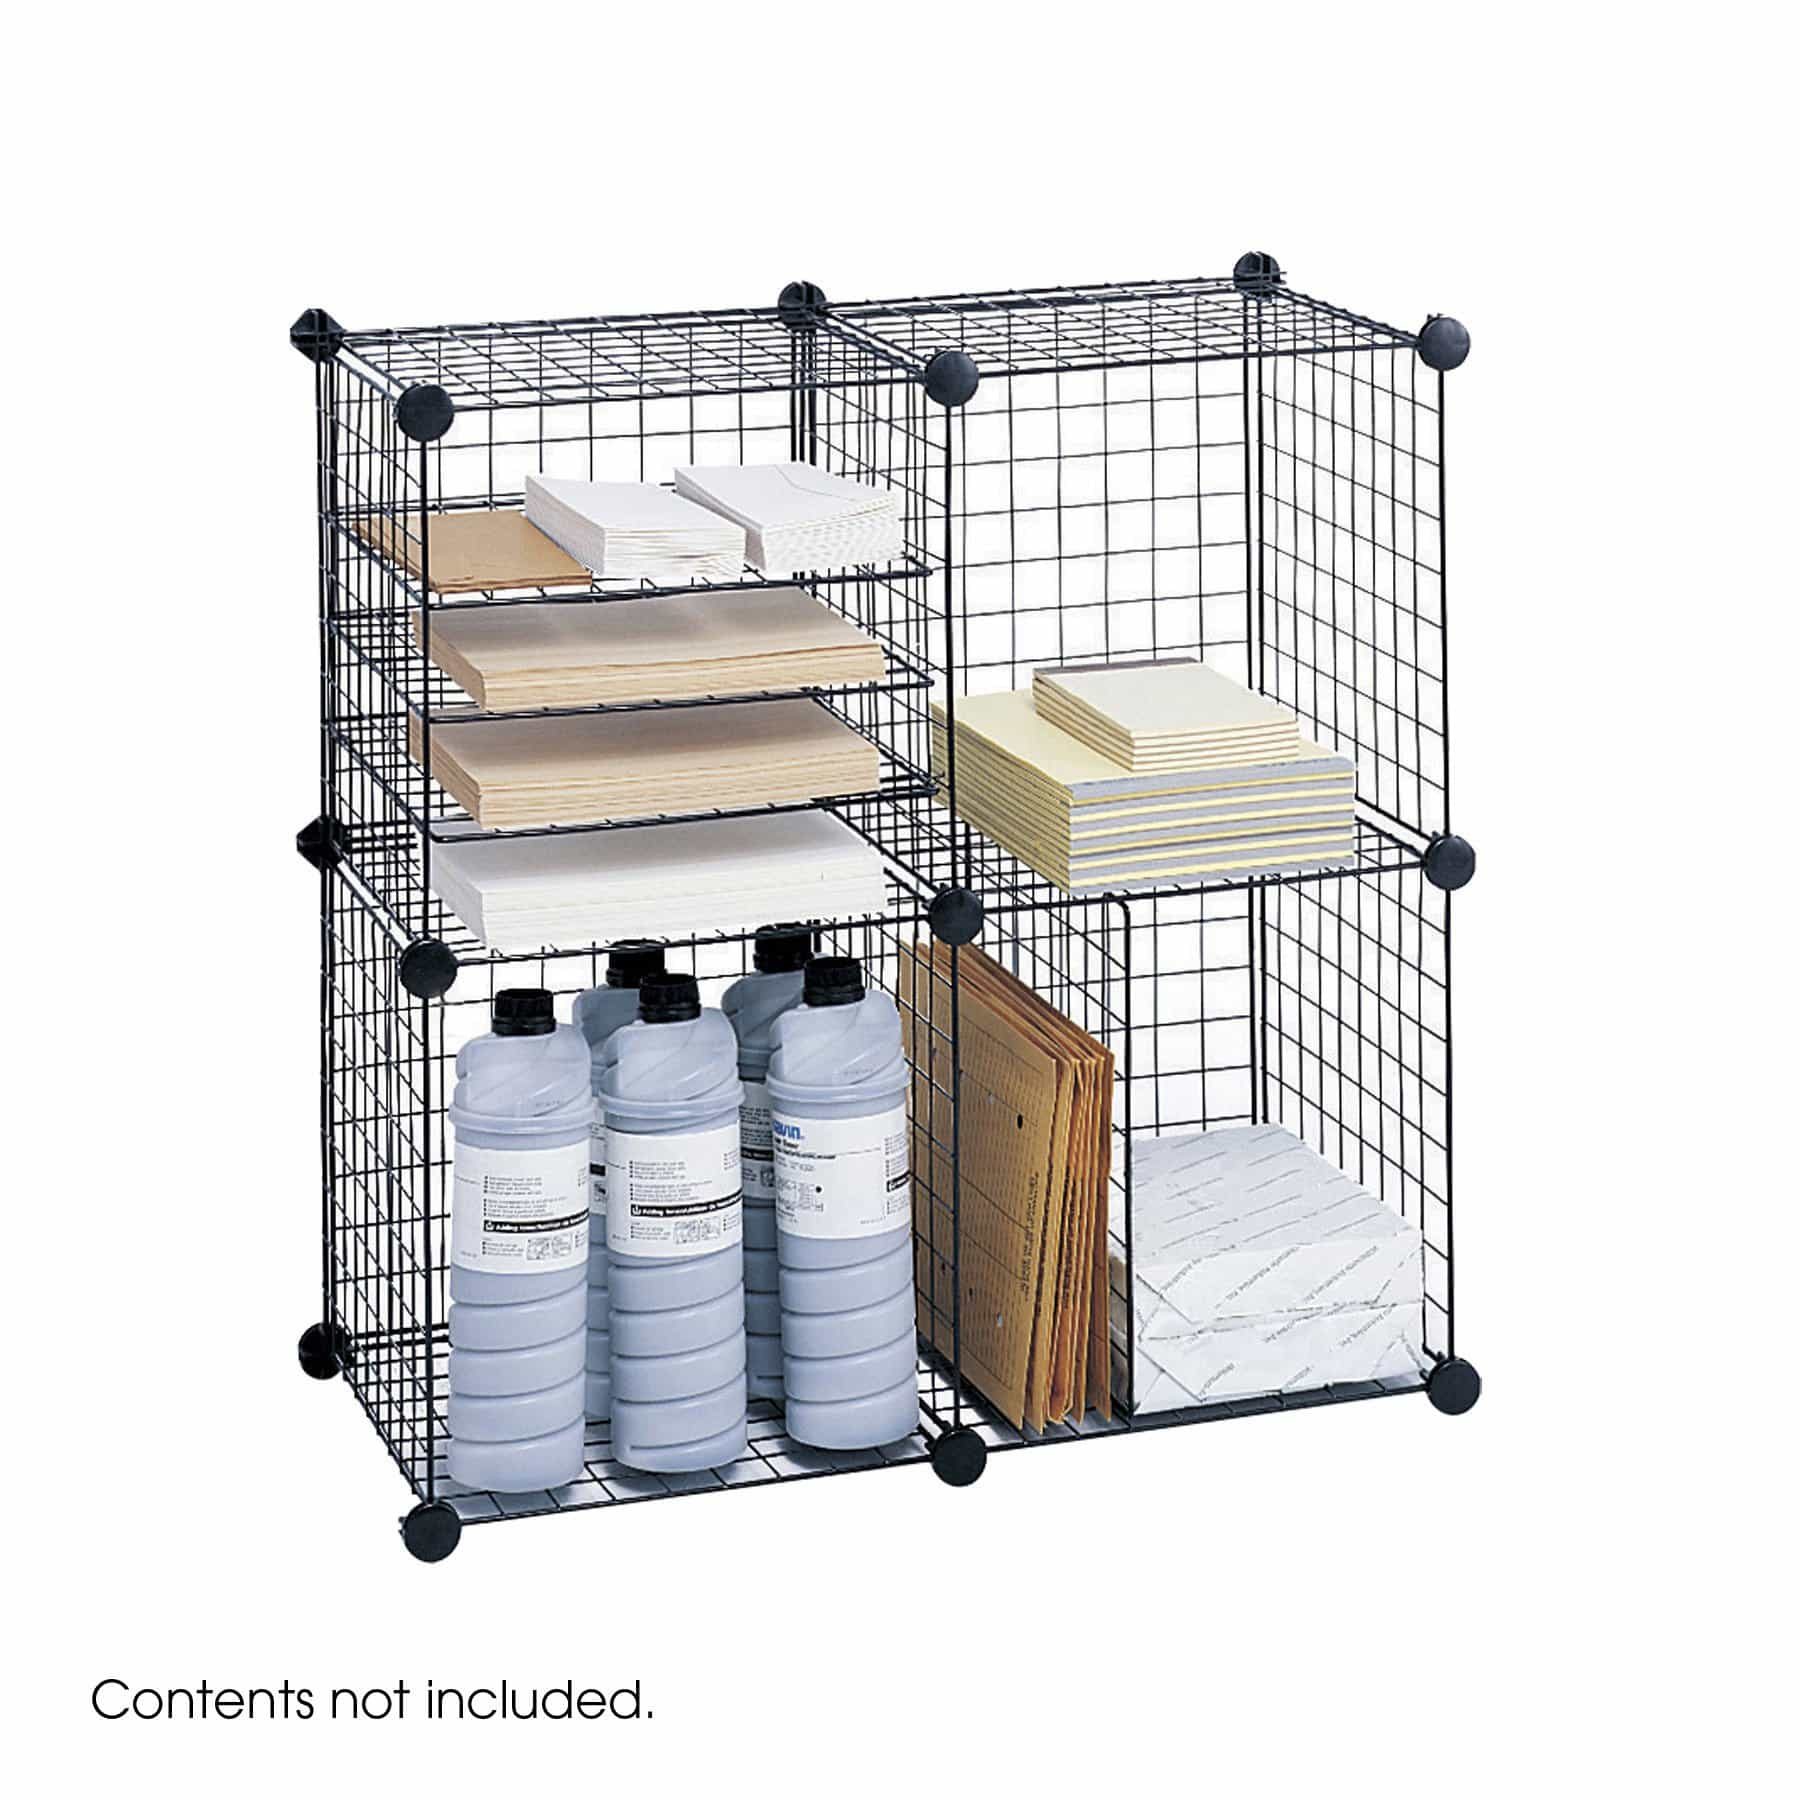 bedinhome - 5279BL Safco Black Desk organization Welded open wire construction Cubes - Safco - Economy Organizers